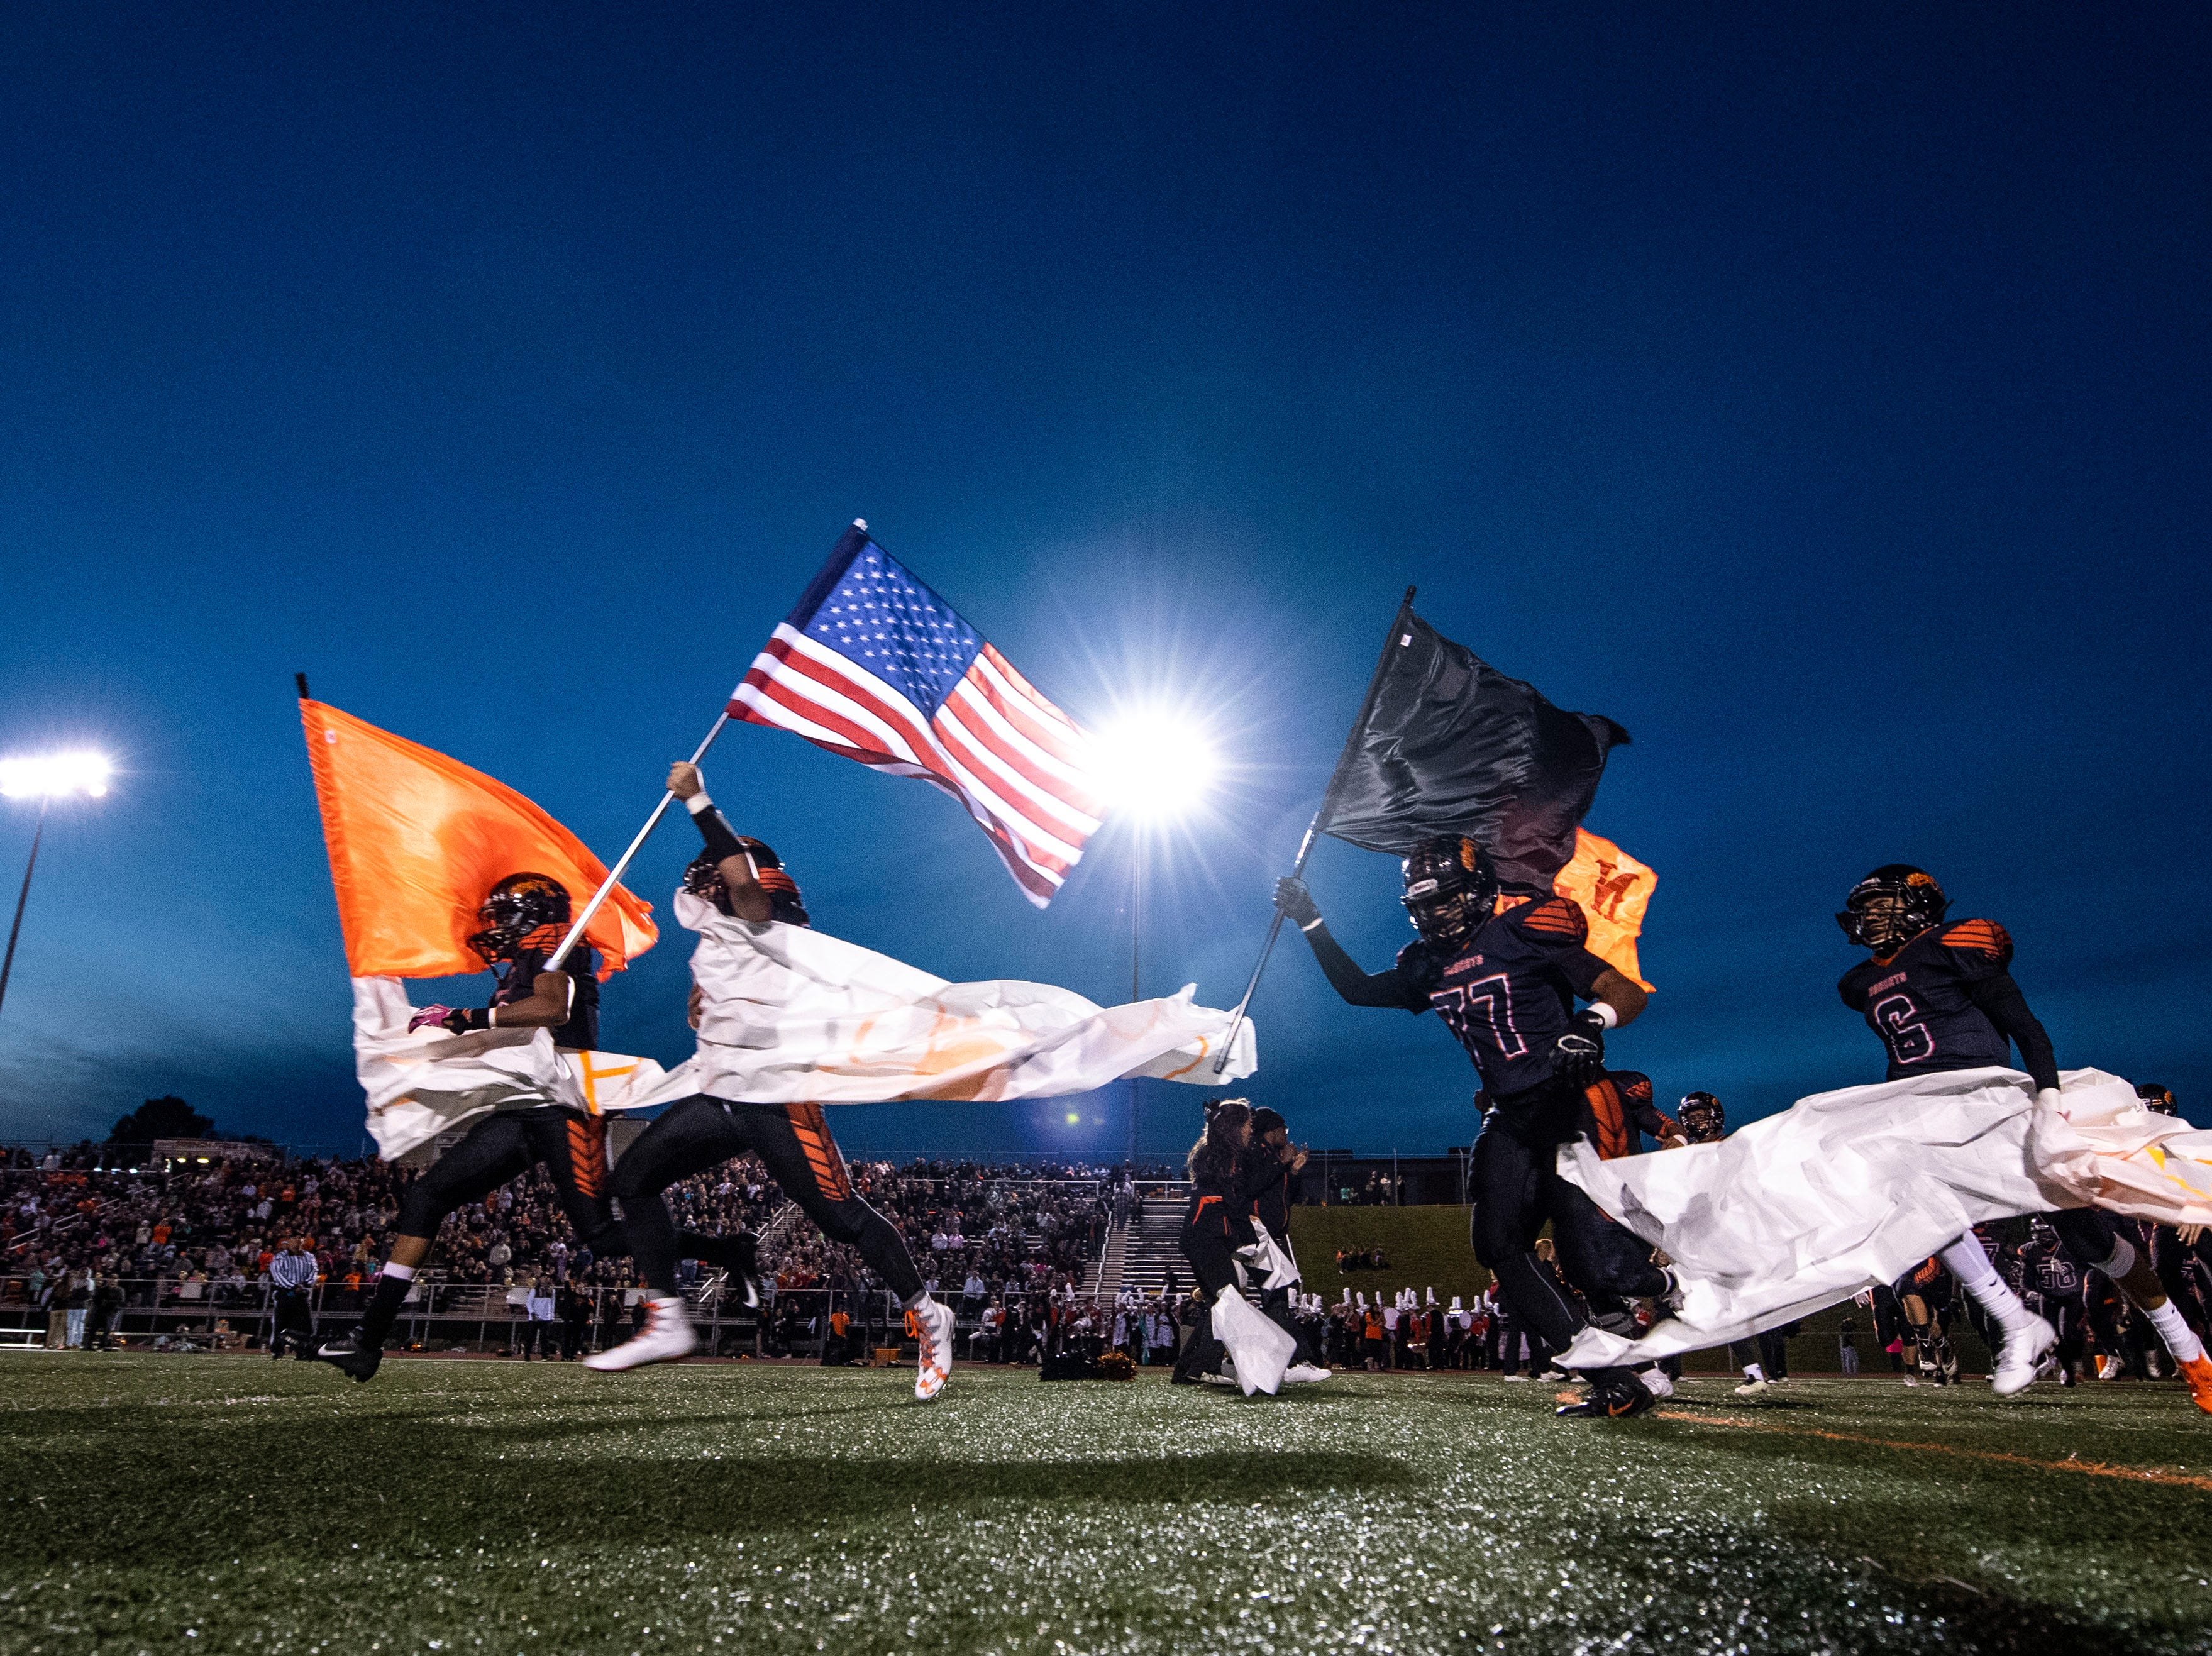 The Northeastern Bobcats enter the field for their homecoming game on Friday, Oct. 12, 2018. The Central York Panthers beat the Northeastern Bobcats, 44-7.